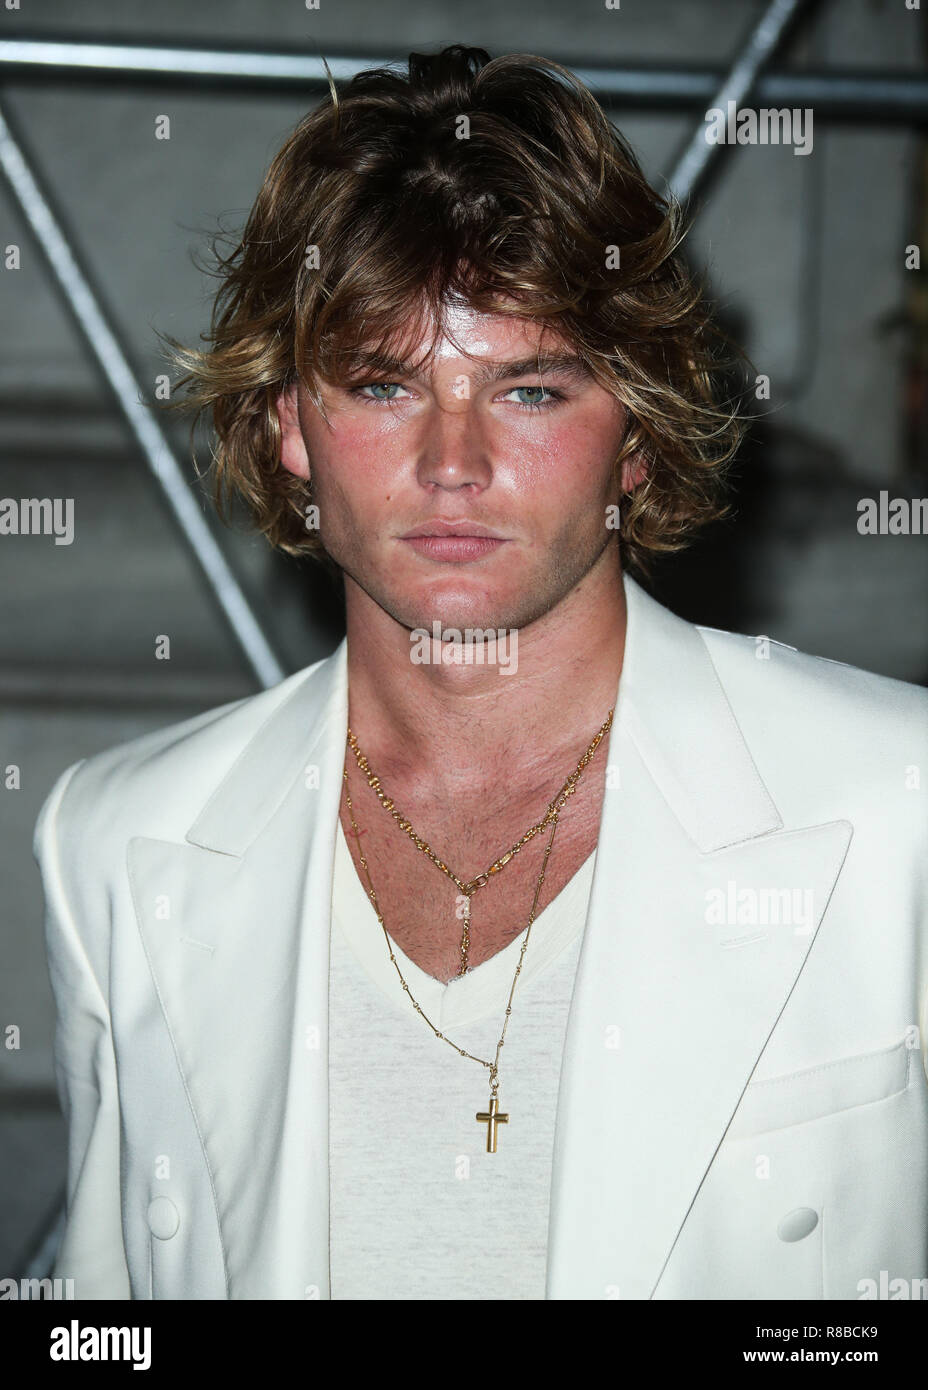 a5da9ea2 MANHATTAN, NEW YORK CITY, NY, USA - SEPTEMBER 07: Jordan Barrett at